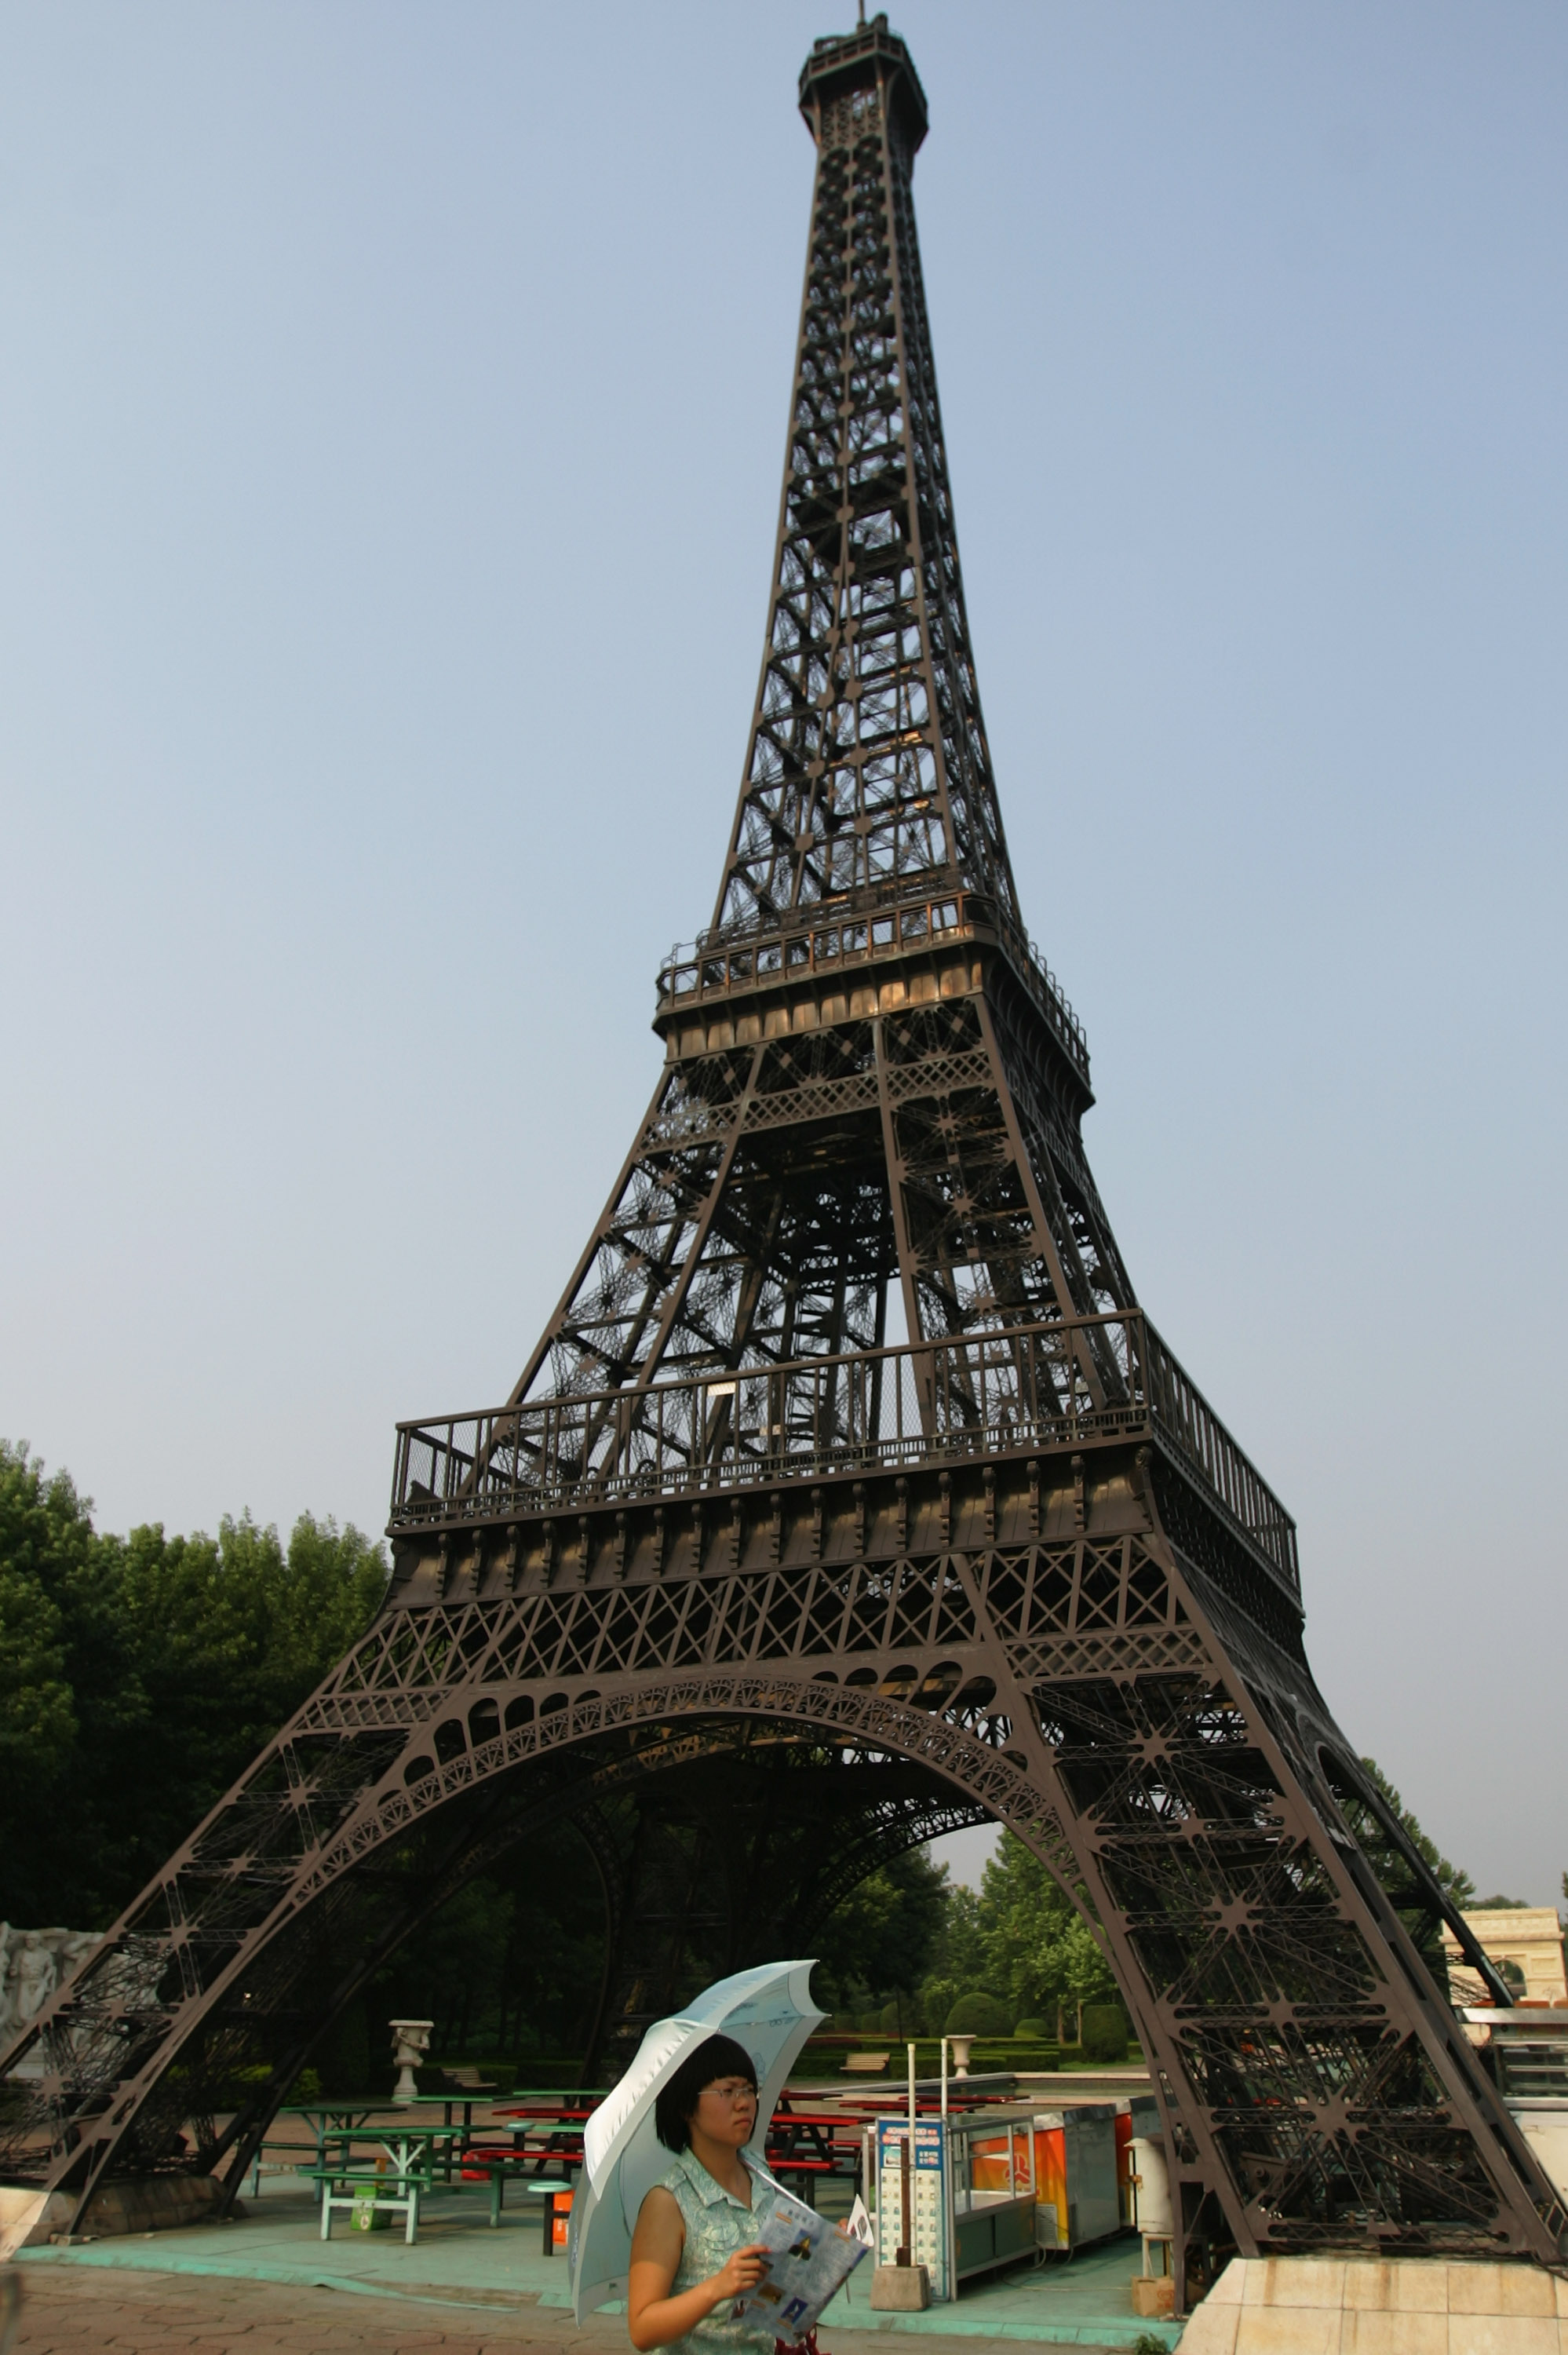 BEIJING - JULY 23:  A Chinese tourist walks under a replica of the Eiffel Tower at the World Park on July 23, 2008 in Beijing, China. The World Park is one of three parks designated for protesters parading during Beijing Olympic Games, according to China